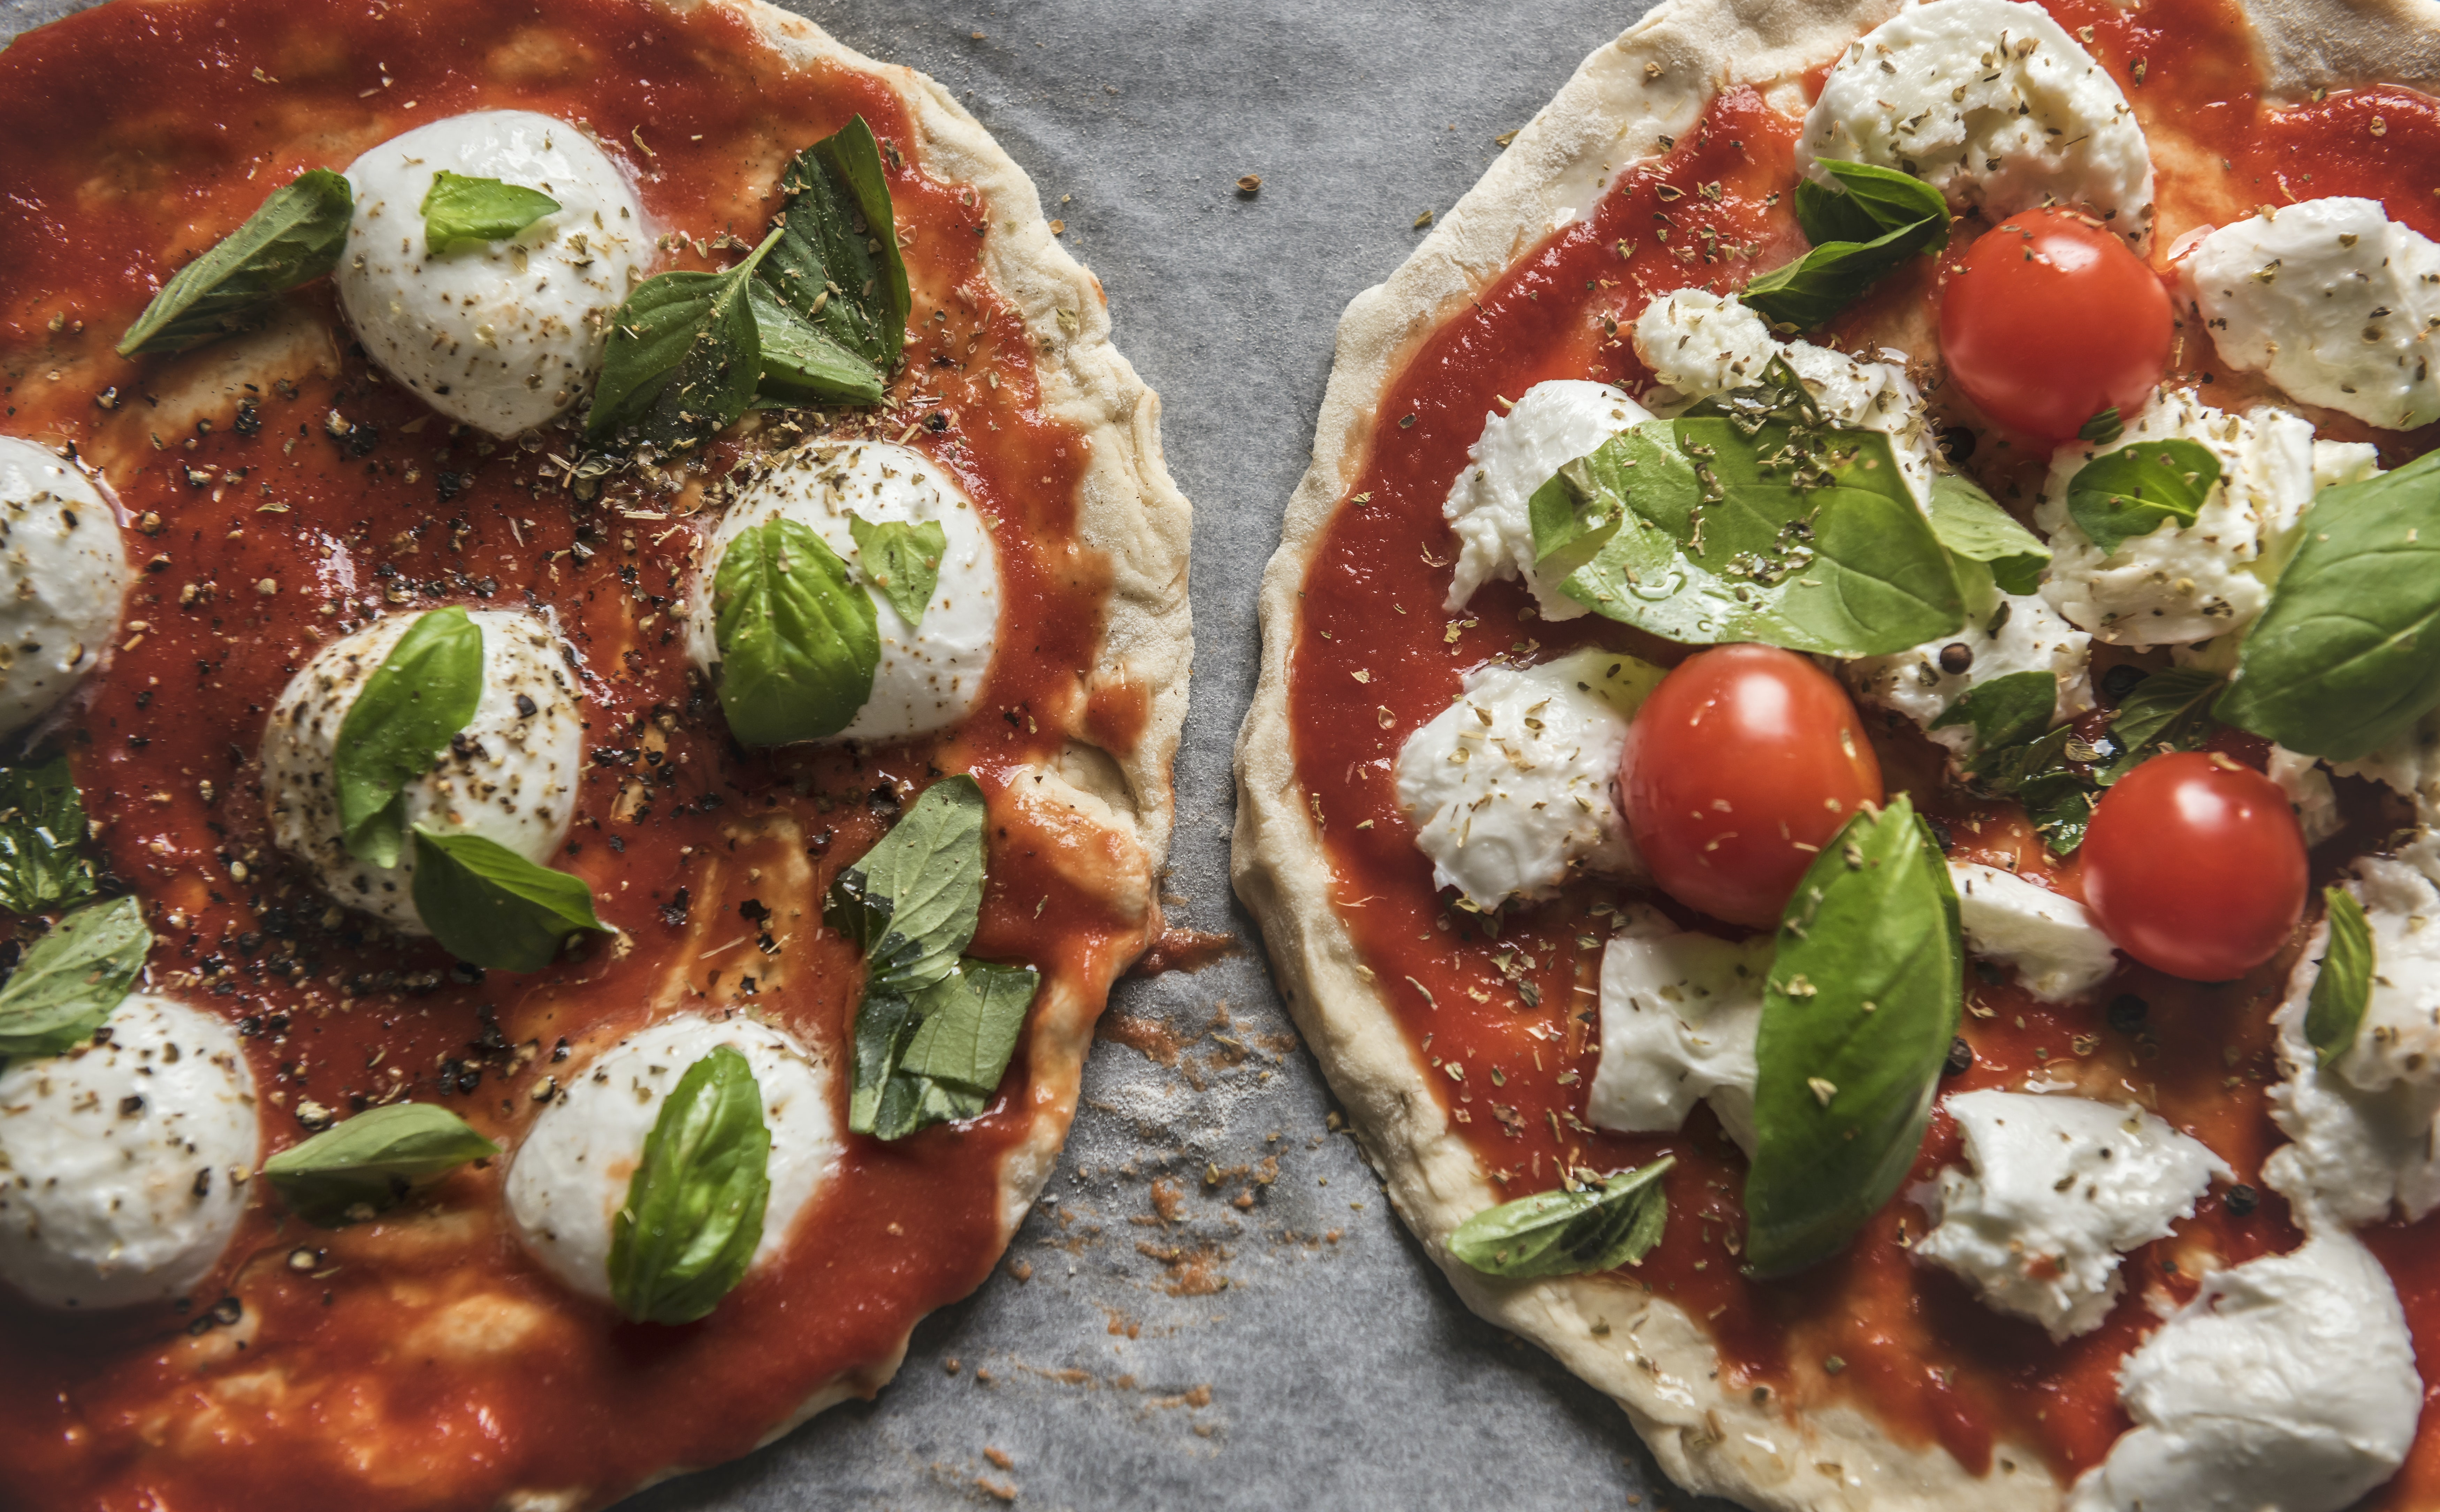 two baked pizza with tomatoes and green leaves toppings